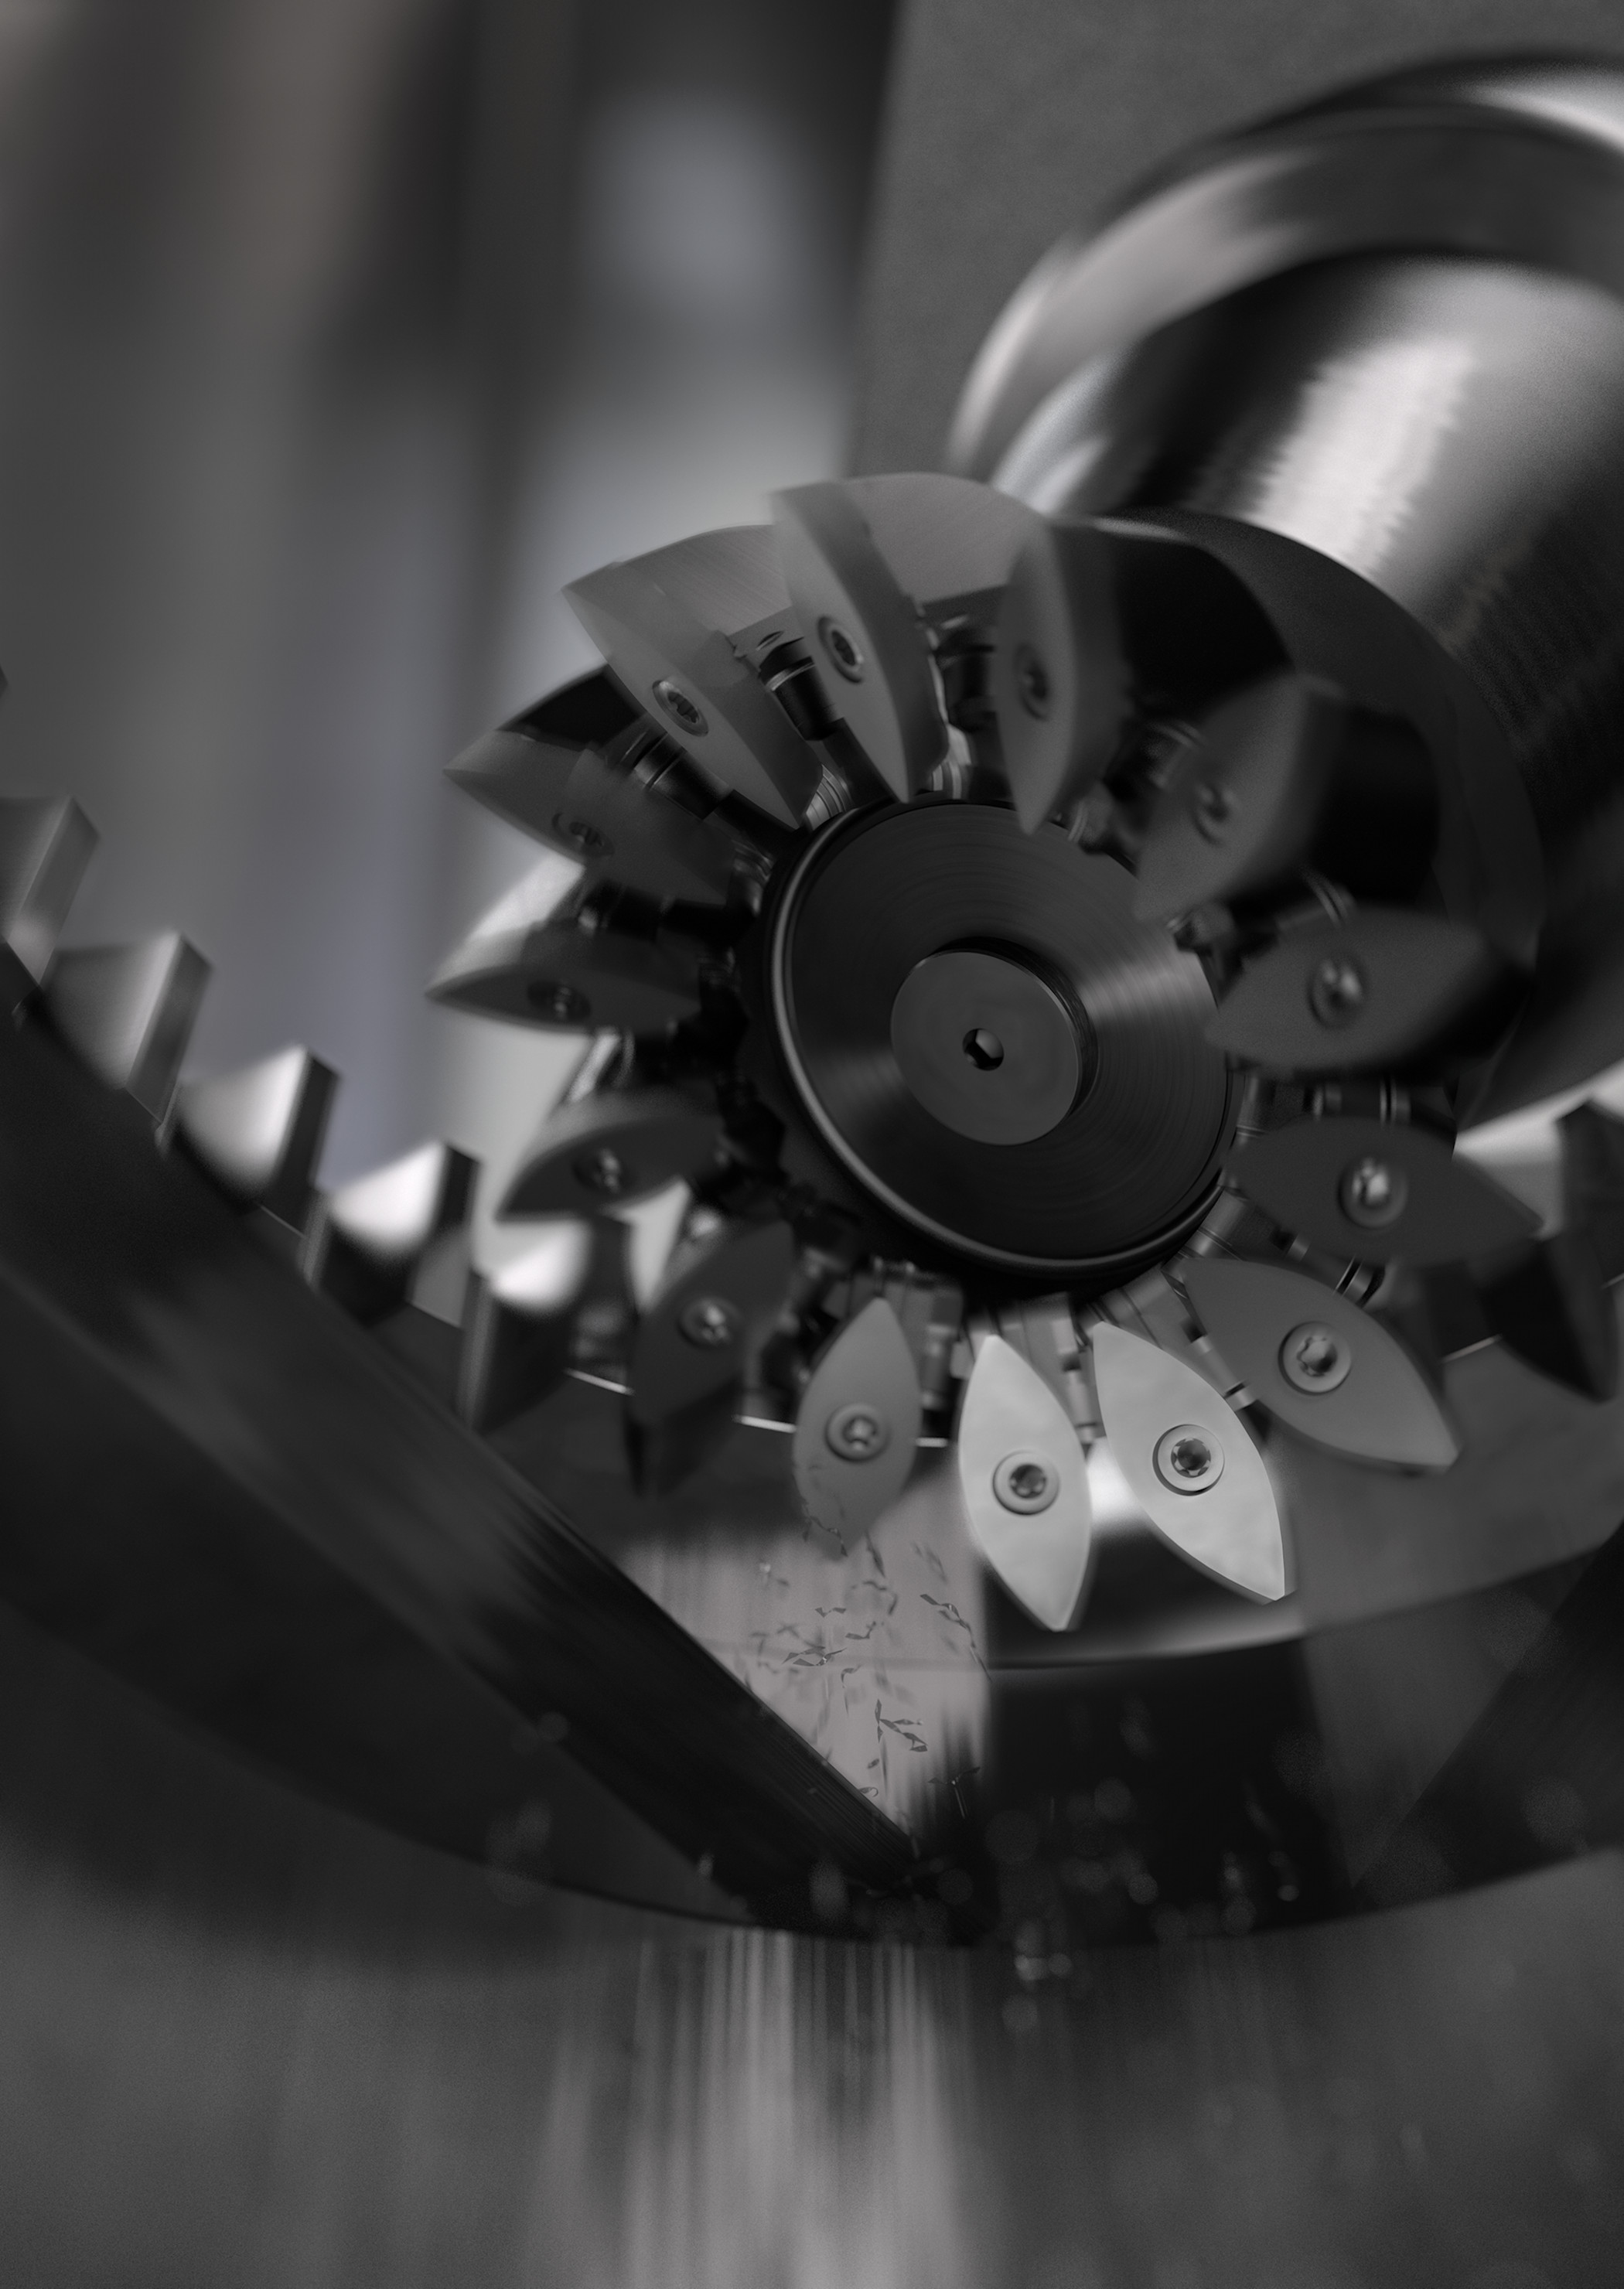 Power skiving, with tools like CoroMill® 180 indexable power skiving cutter, enables all machining to be carried out in one single set-up.